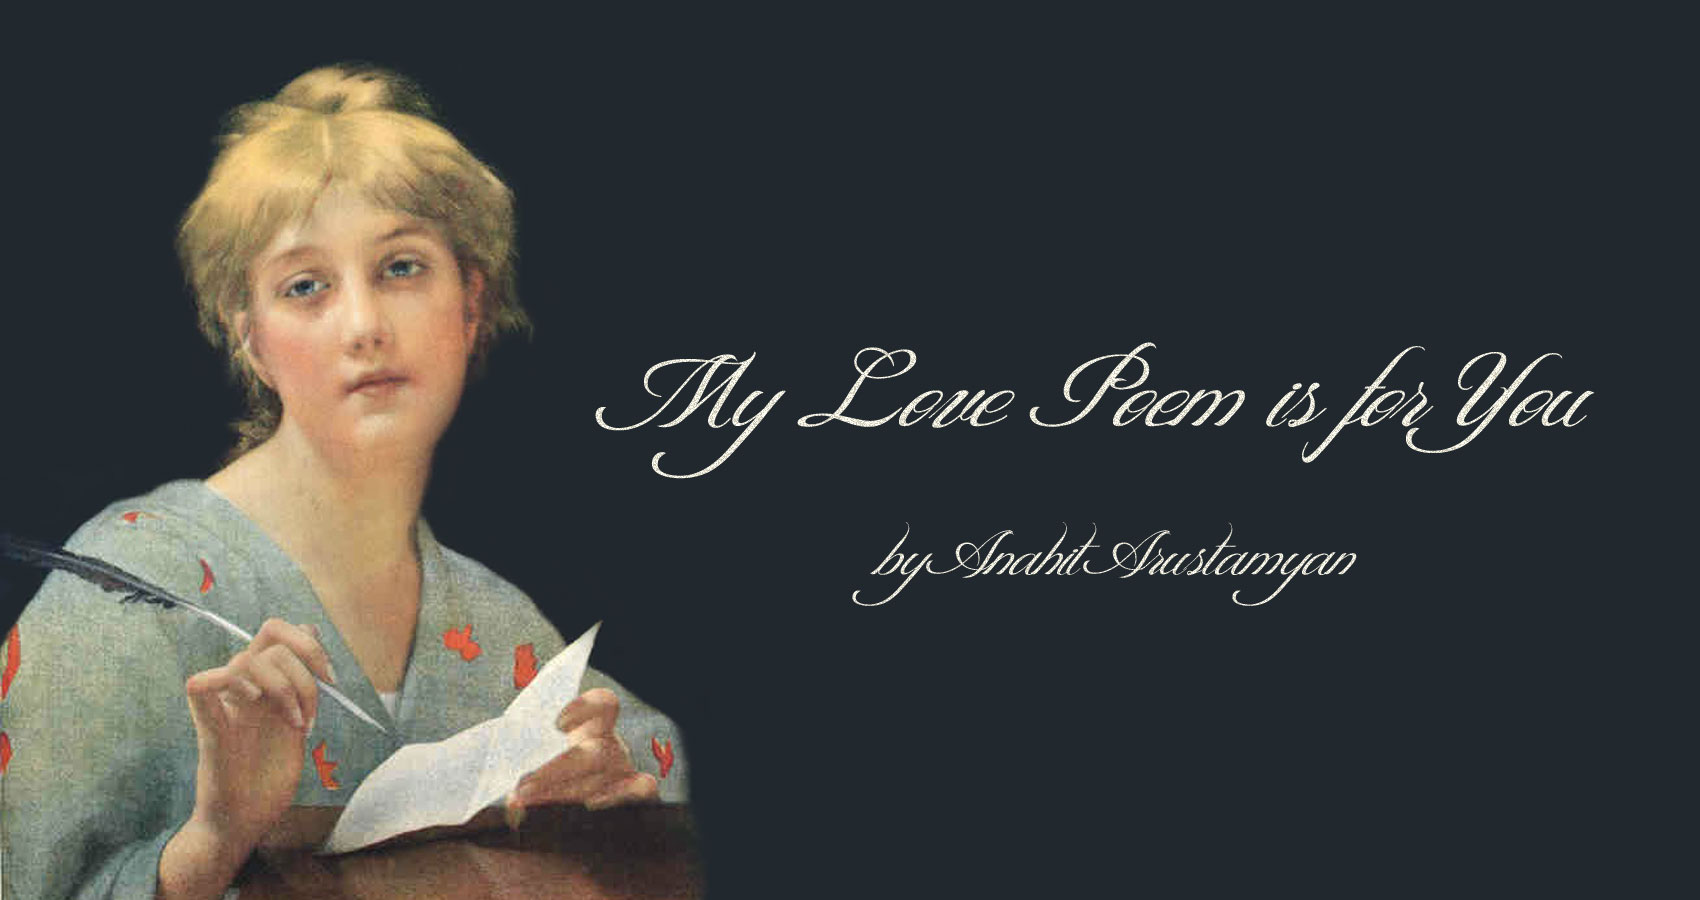 My Love Poem is for You by Anahit Arustamyan at Spillwords.com